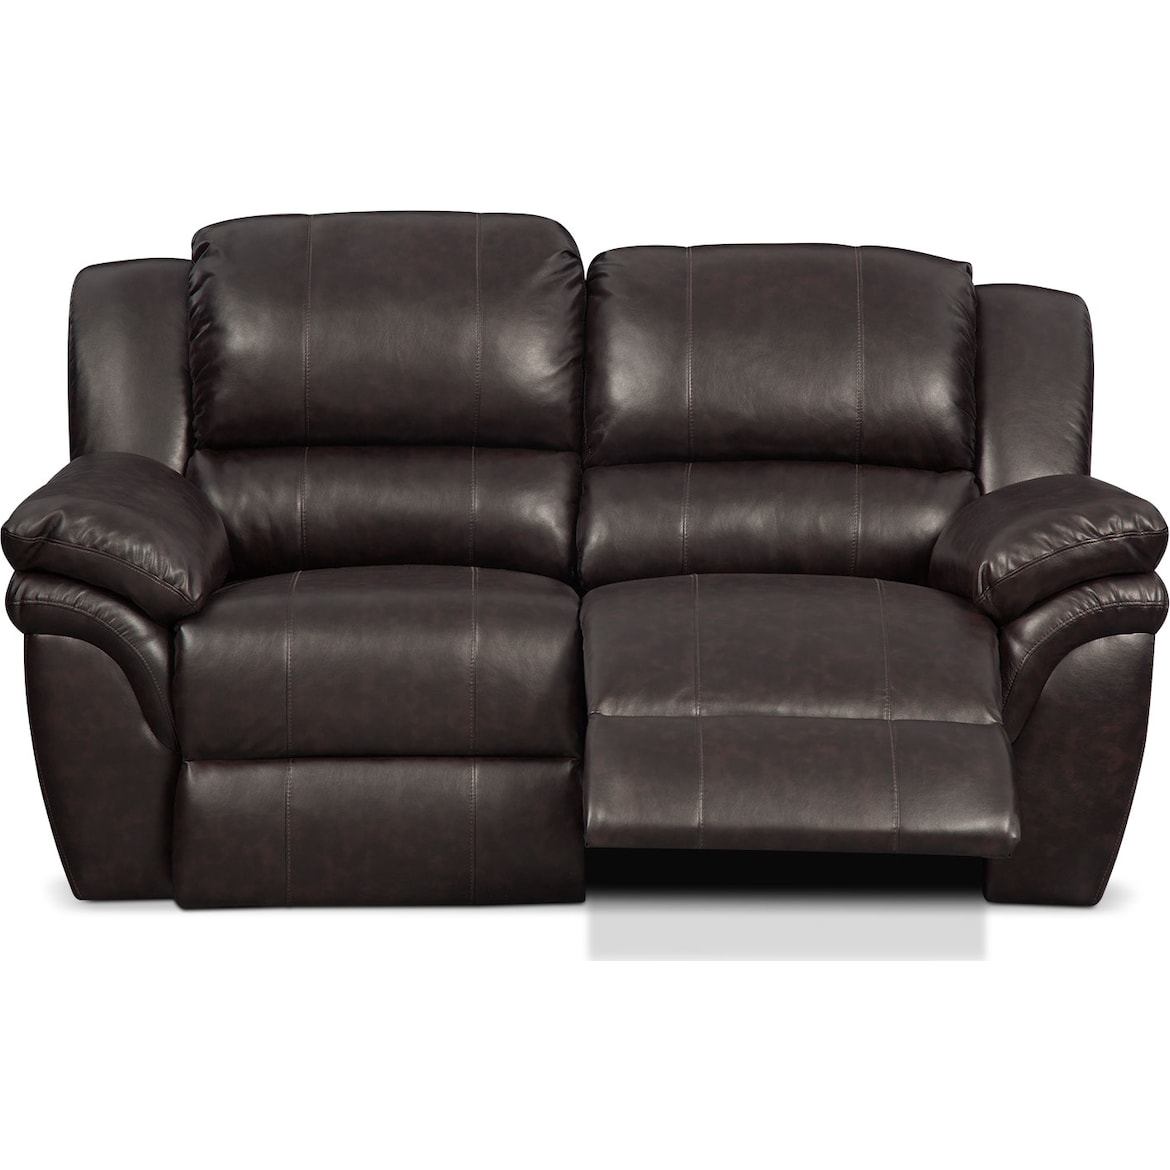 Aldo Manual Reclining Loveseat American Signature Furniture